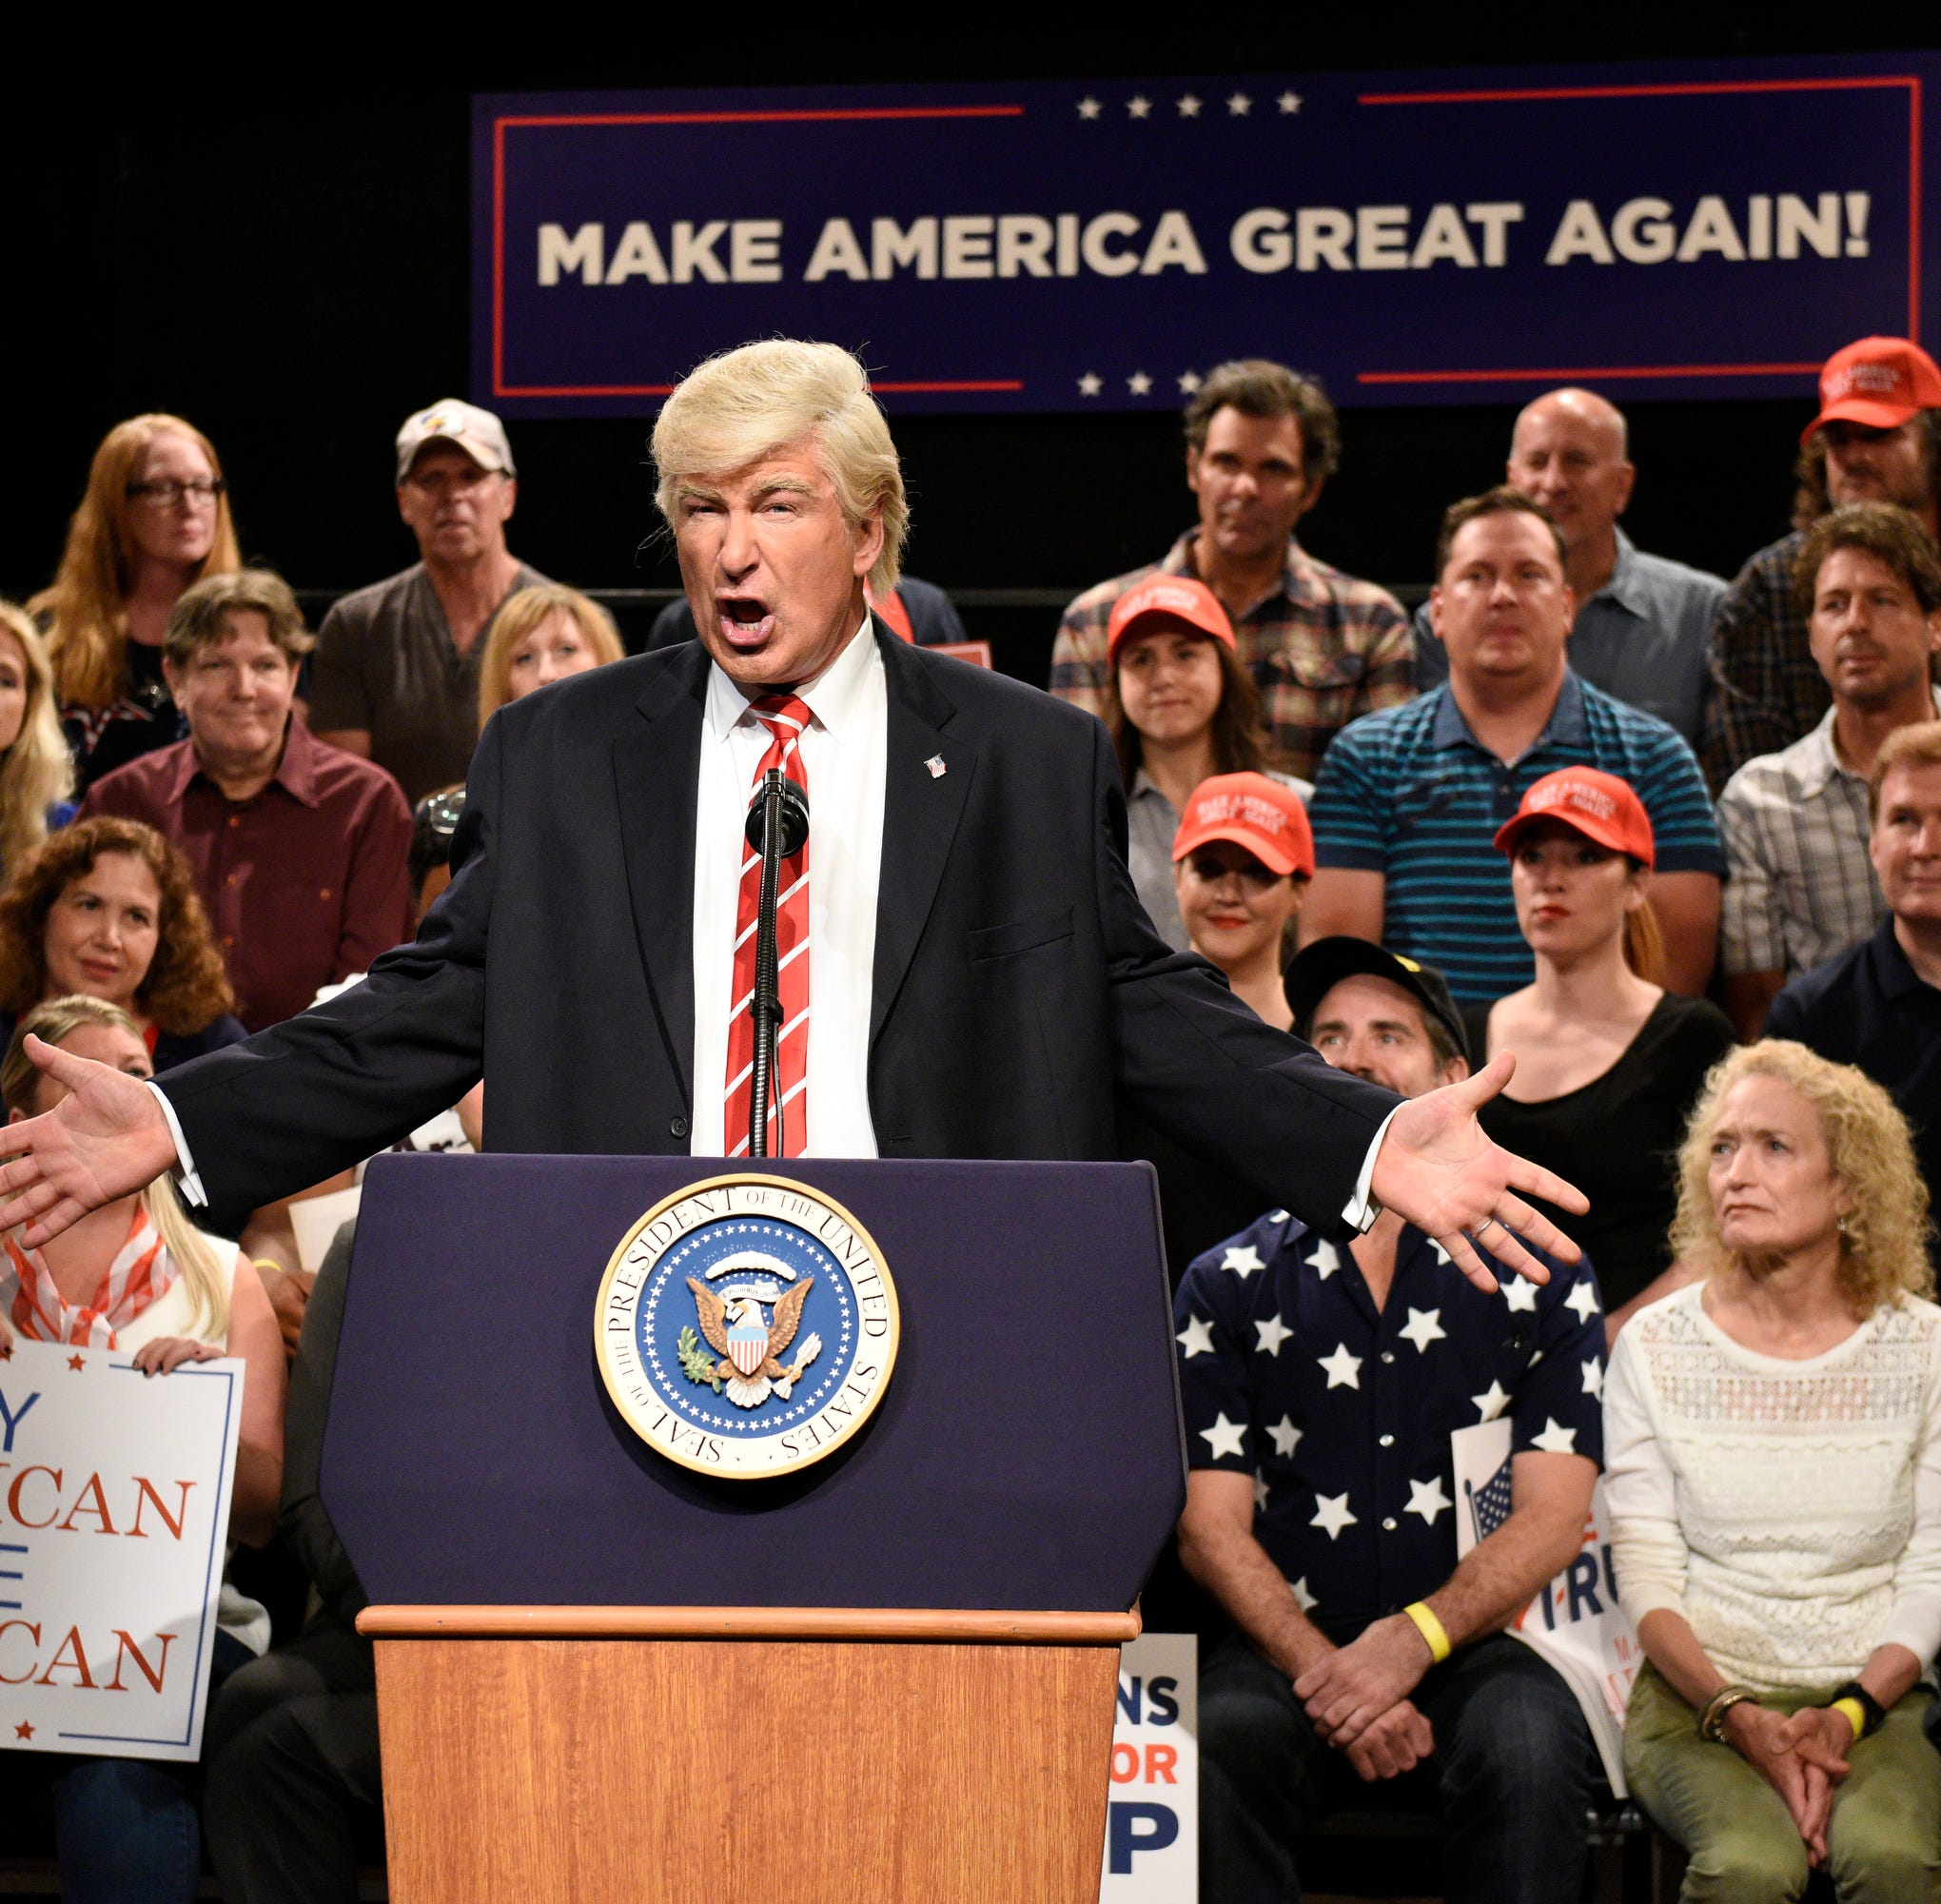 """SATURDAY NIGHT LIVE: WEEKEND UPDATE -- Episode 103 -- Pictured: Alec Baldwin as President Donald Trump during a """"Trump Phoenix Rally"""" on August 24, 2017"""